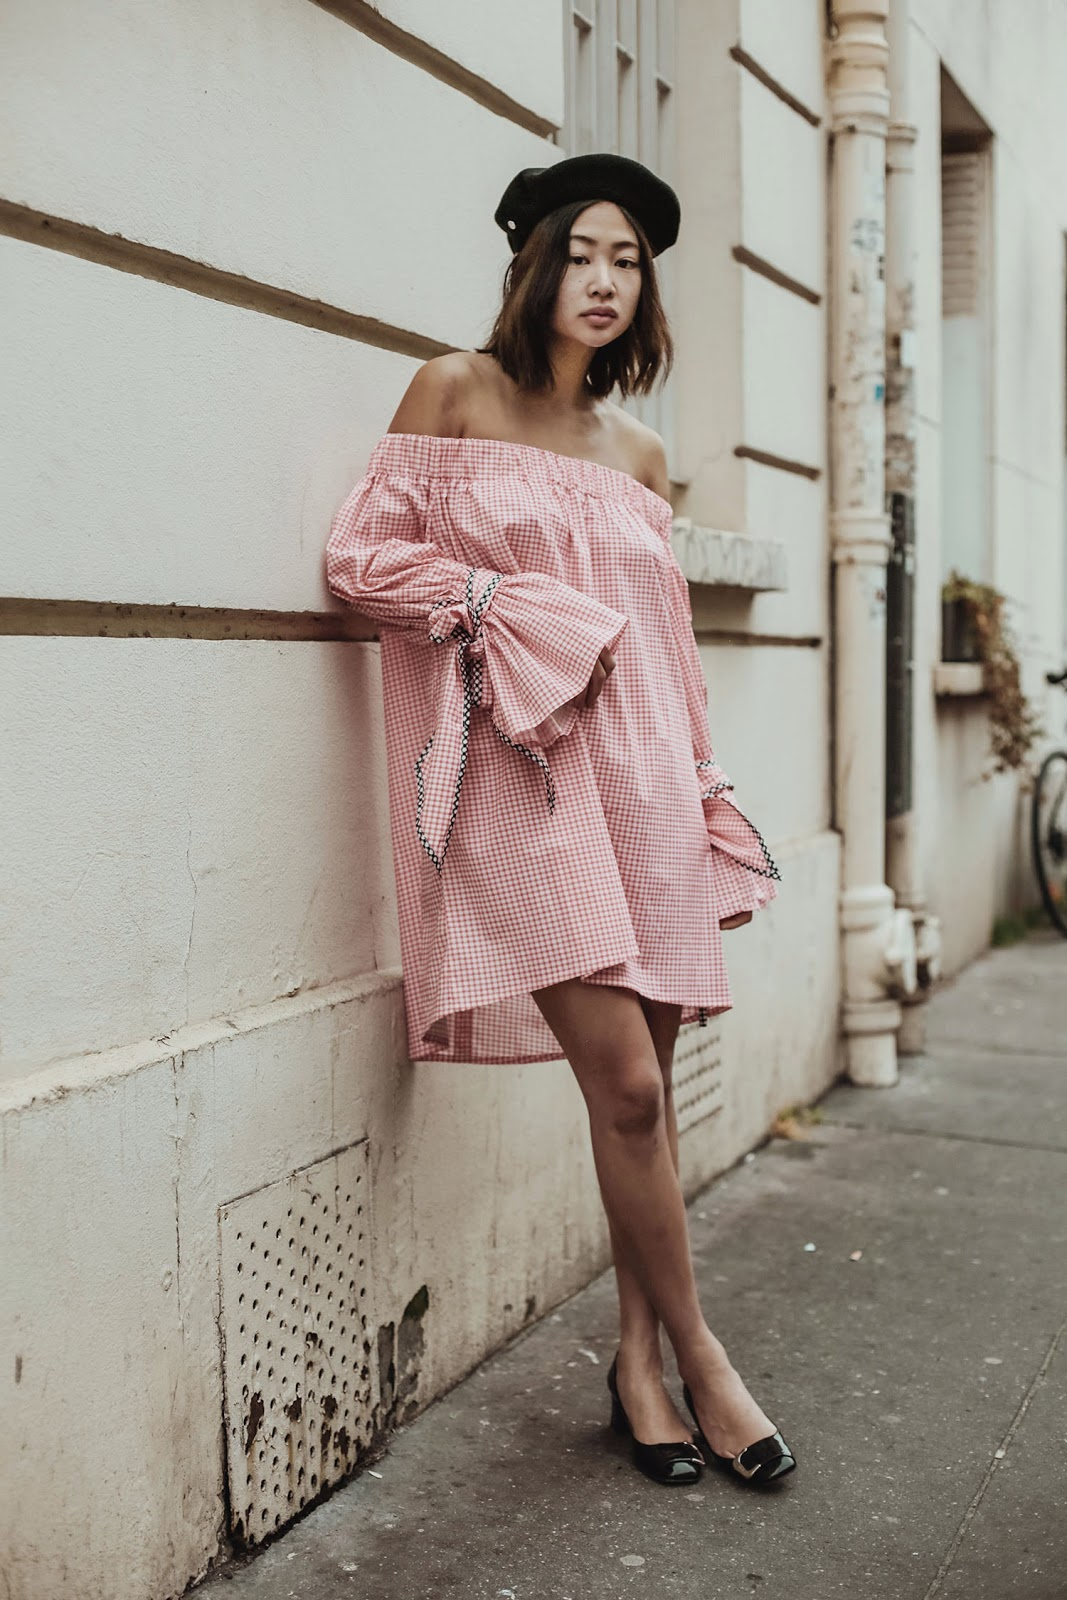 bienvenue-a-paris-Off-the-shoulder linen dress in pink gingham